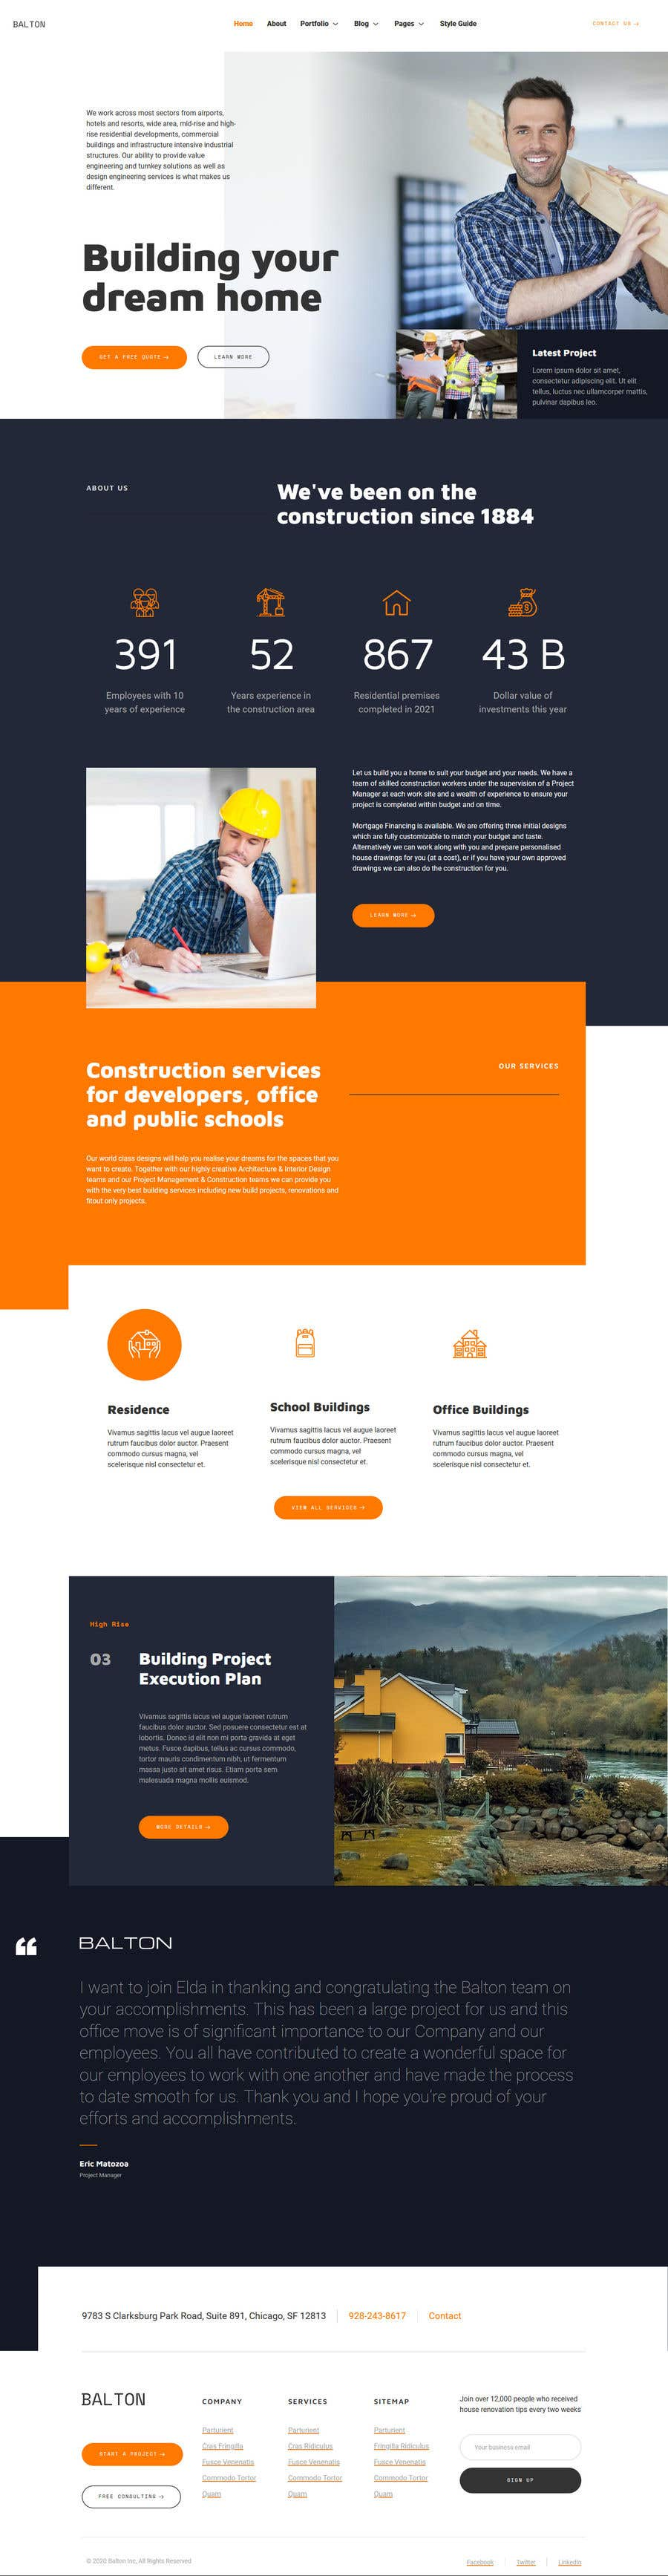 Bài tham dự cuộc thi #                                        56                                      cho                                         I need a Landing Page Website for Small Business Stores